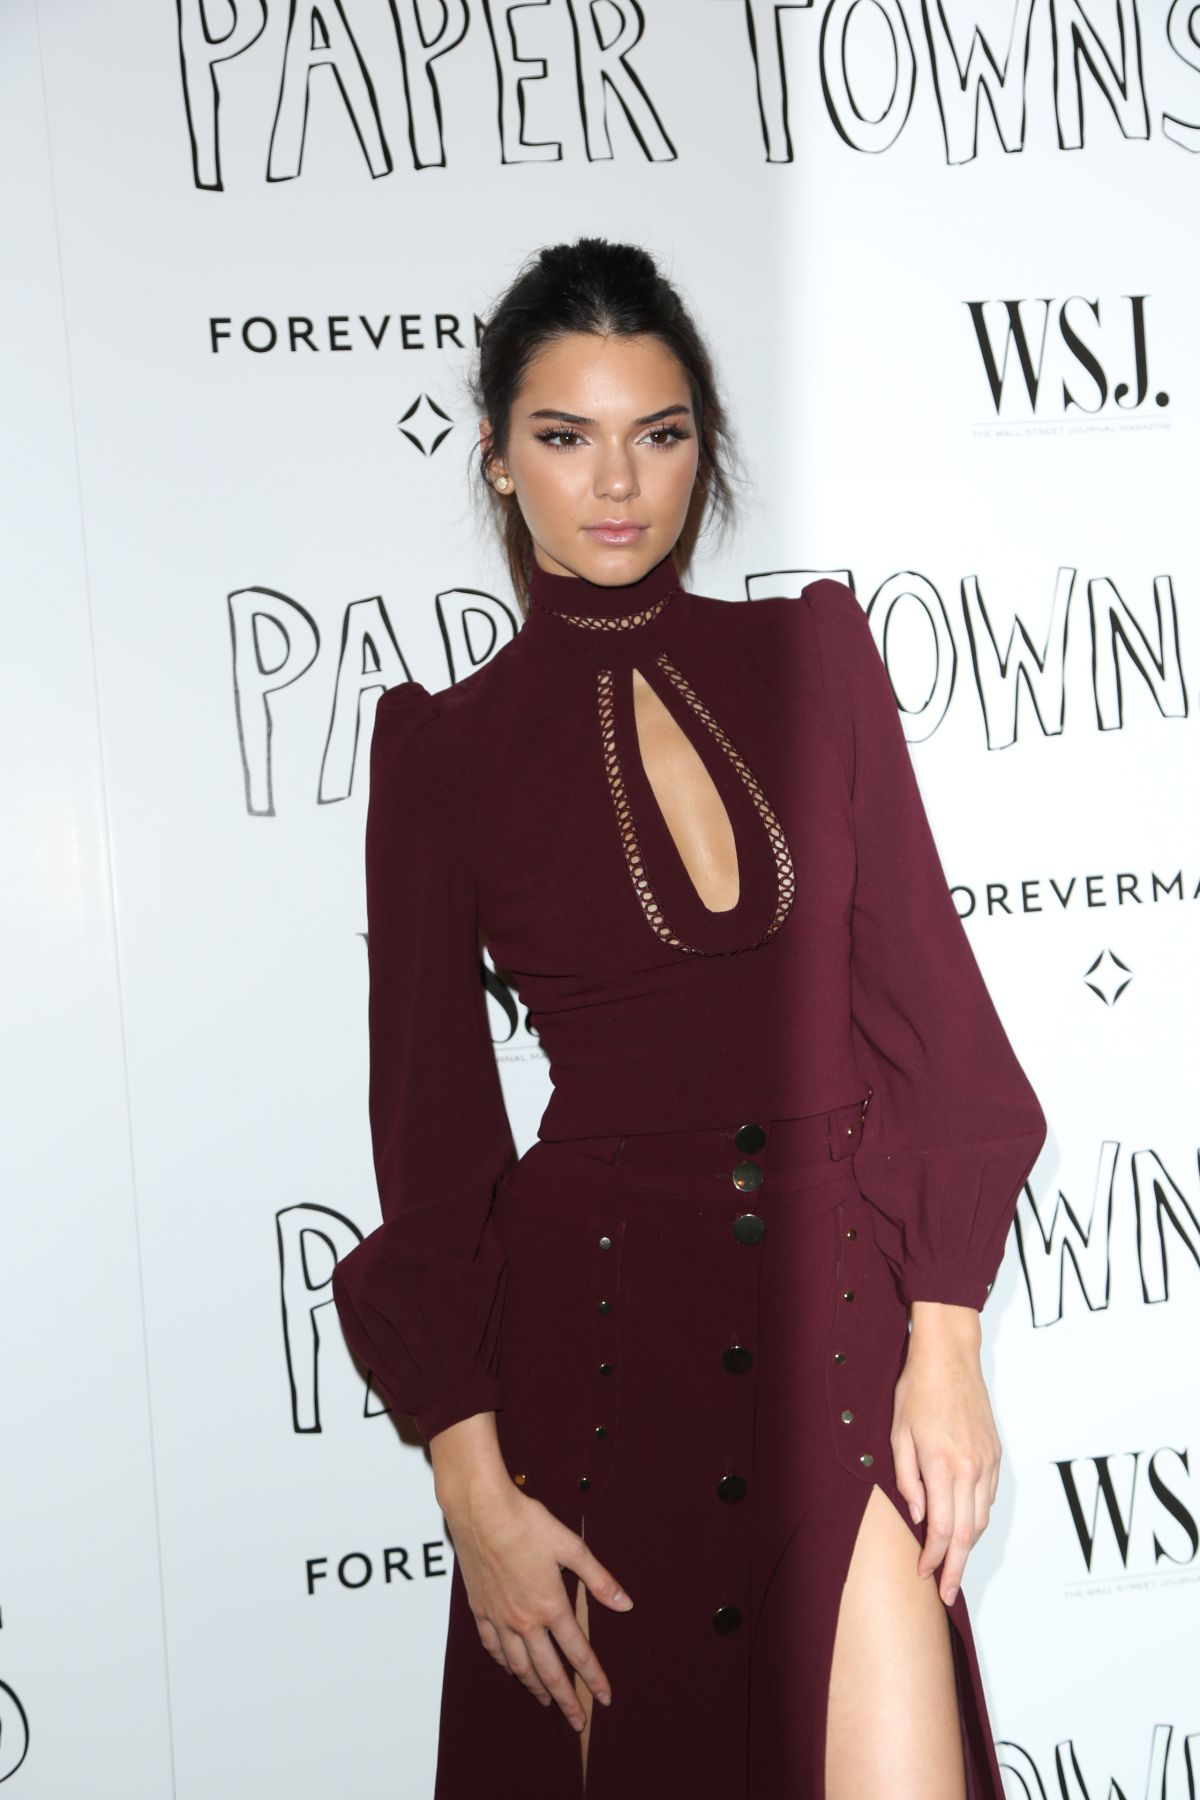 Kendall Jenner images Kendal Jenner HD wallpaper and background 1200x1800